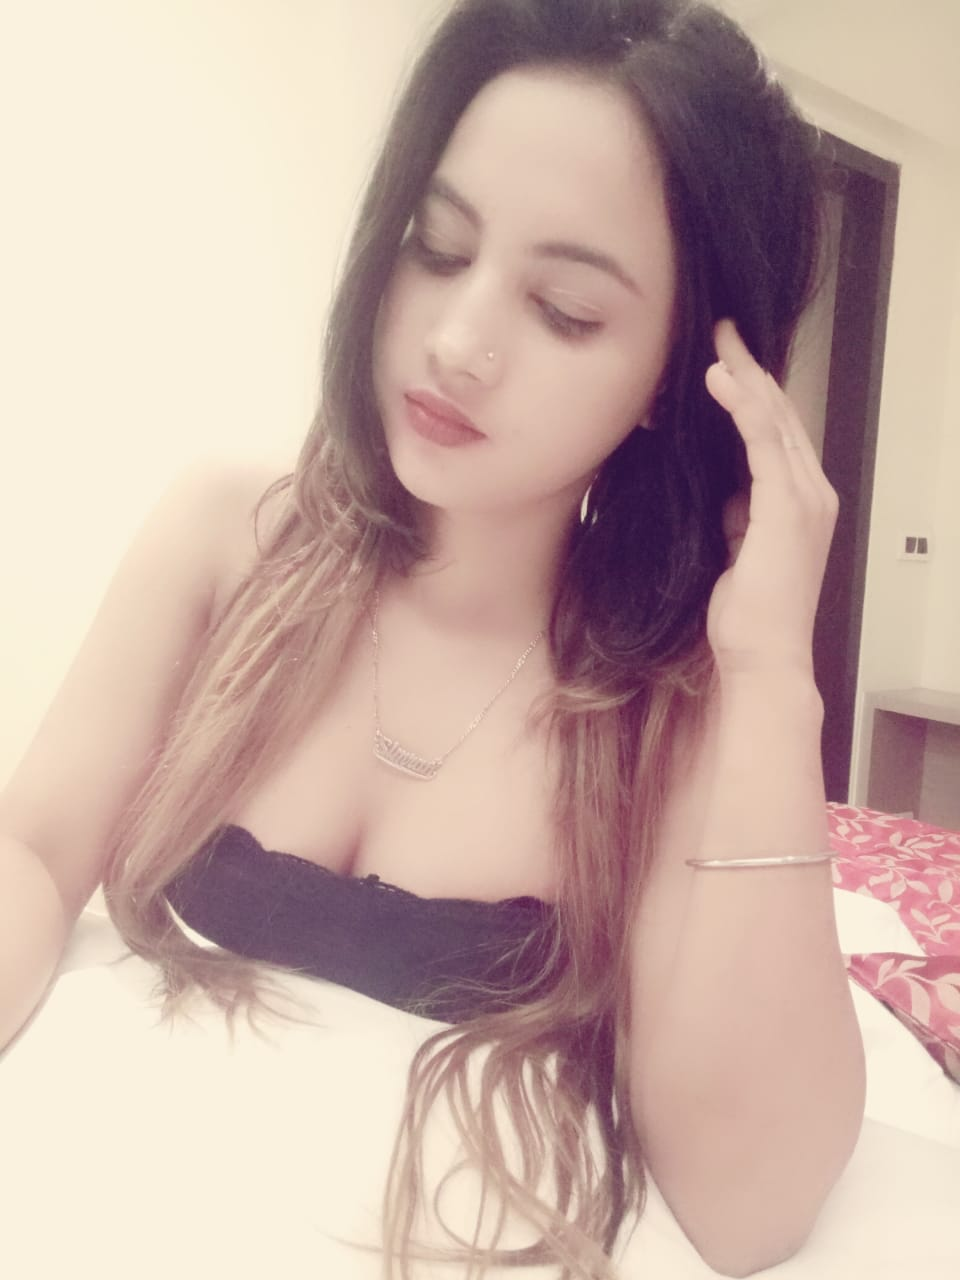 versova Housewife Escorts In